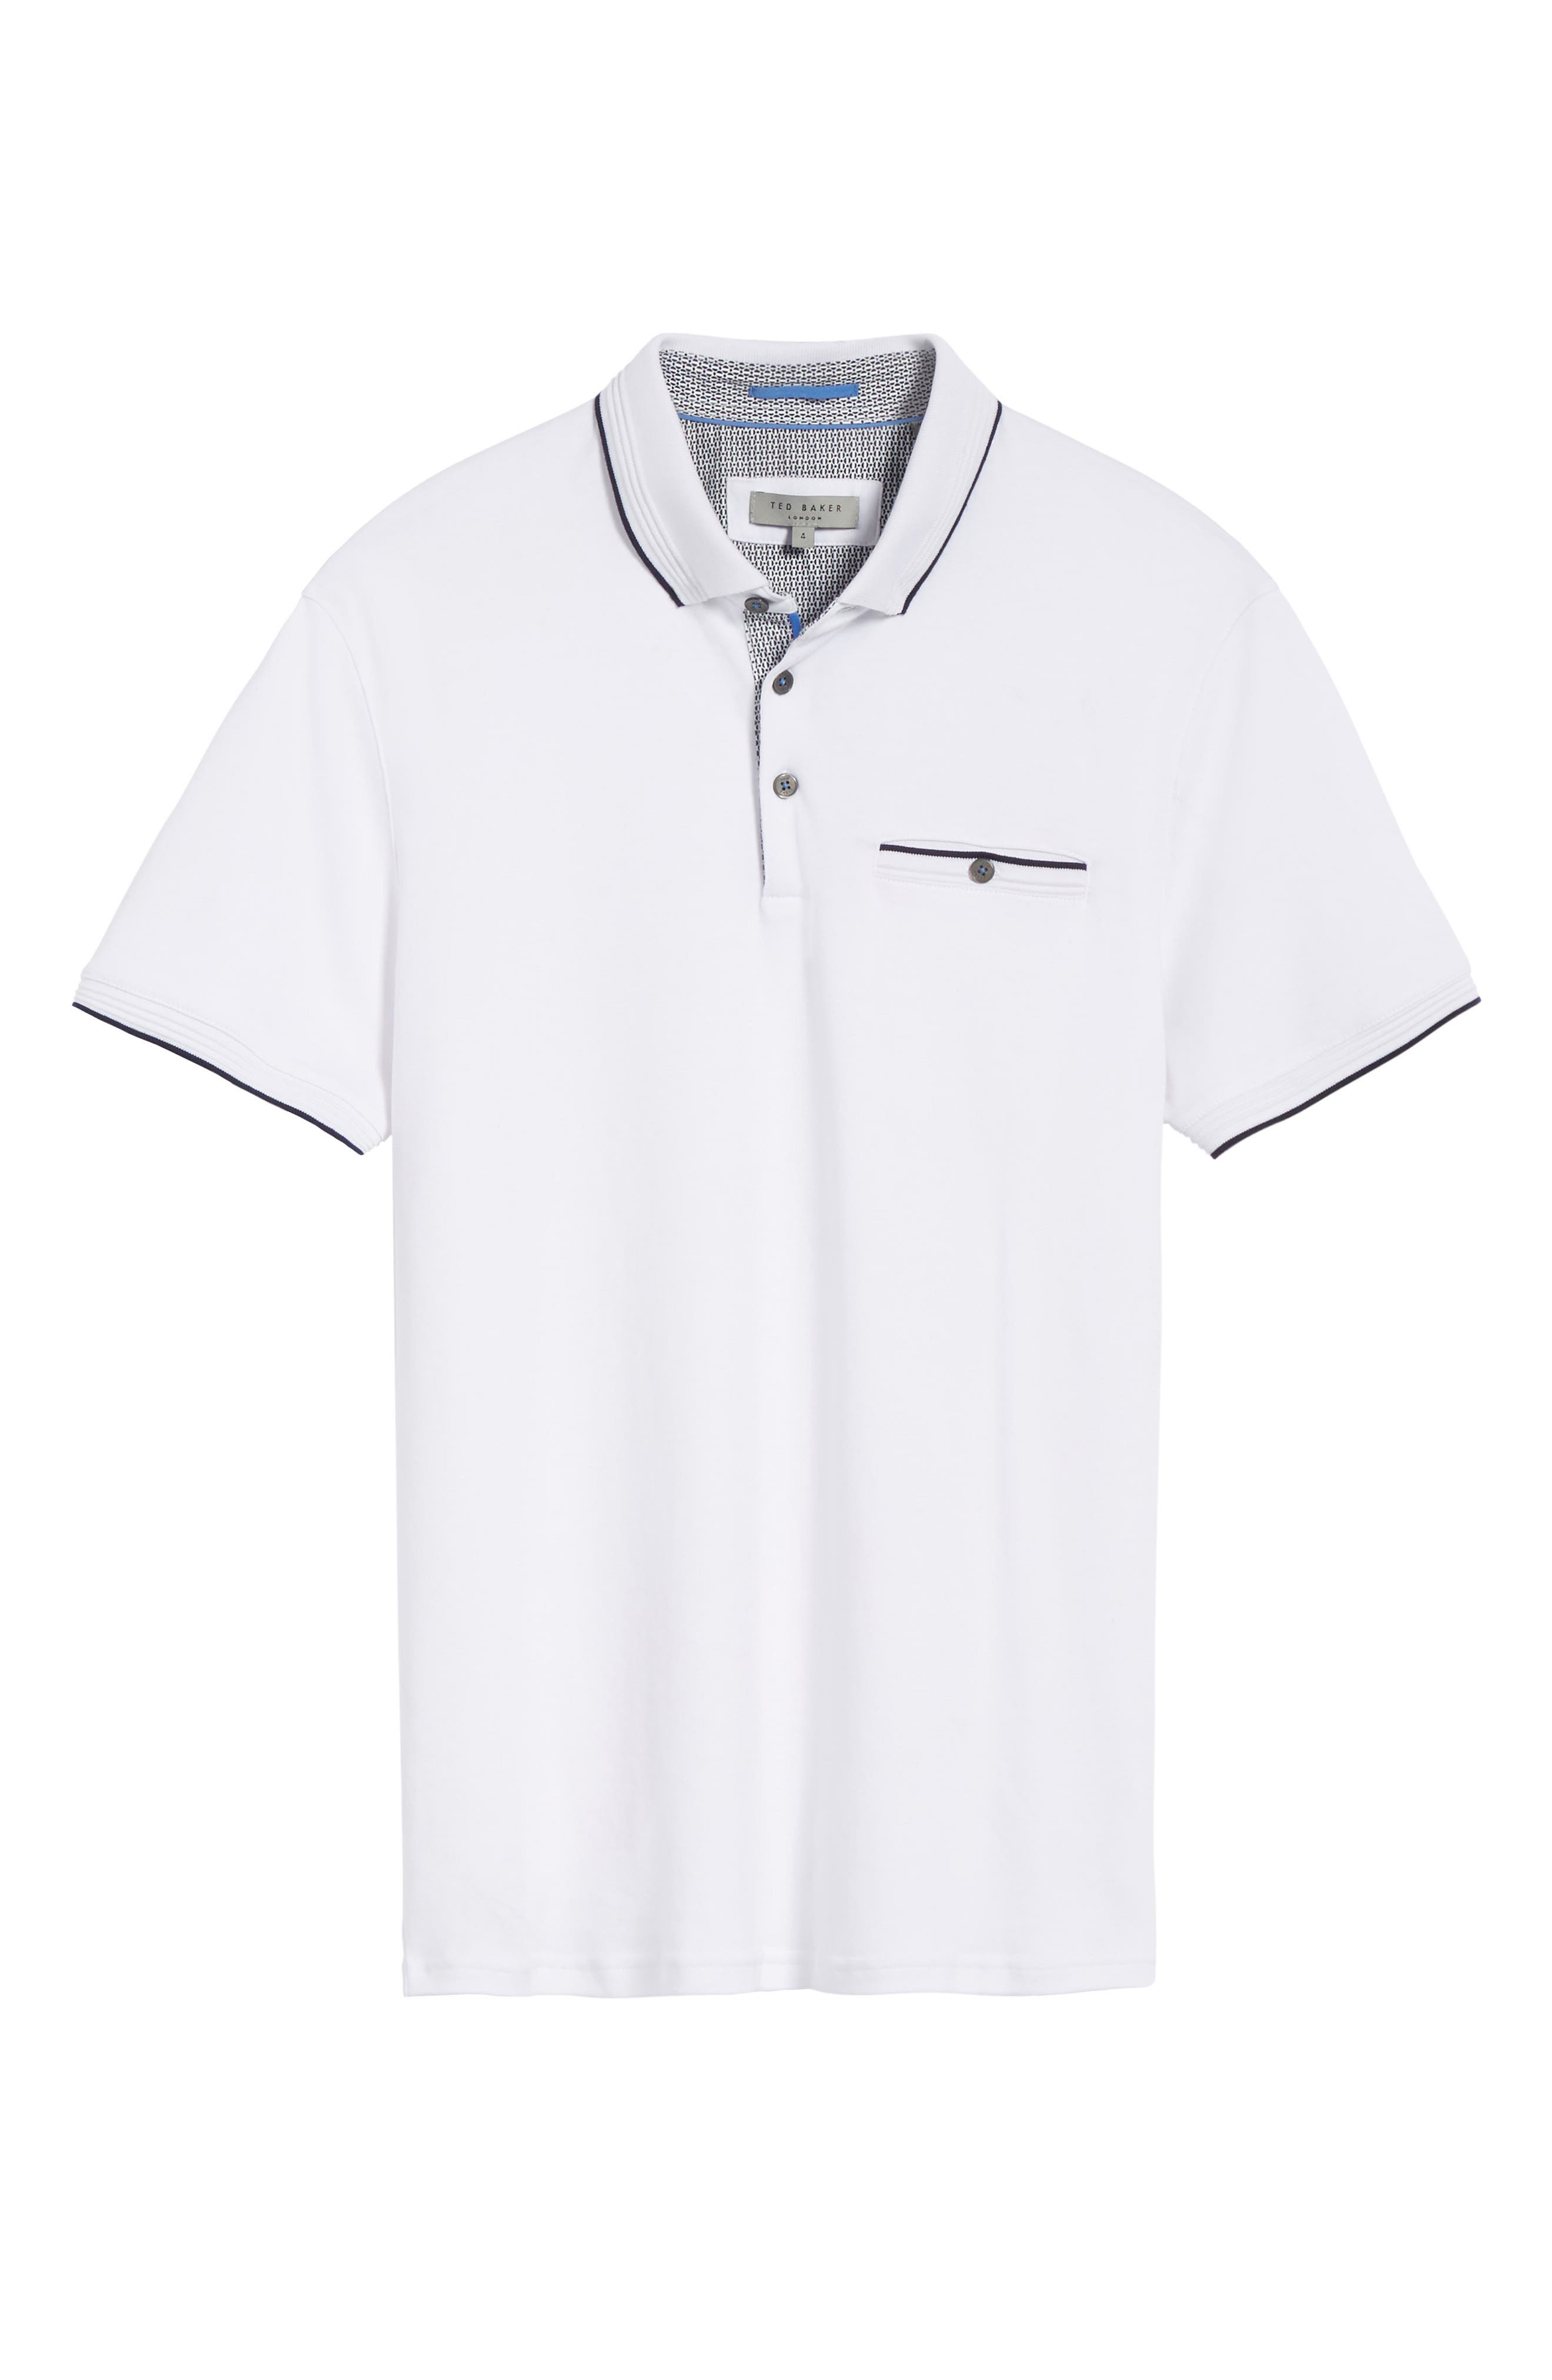 TED BAKER LONDON, Derry Modern Slim Fit Polo, Alternate thumbnail 6, color, WHITE